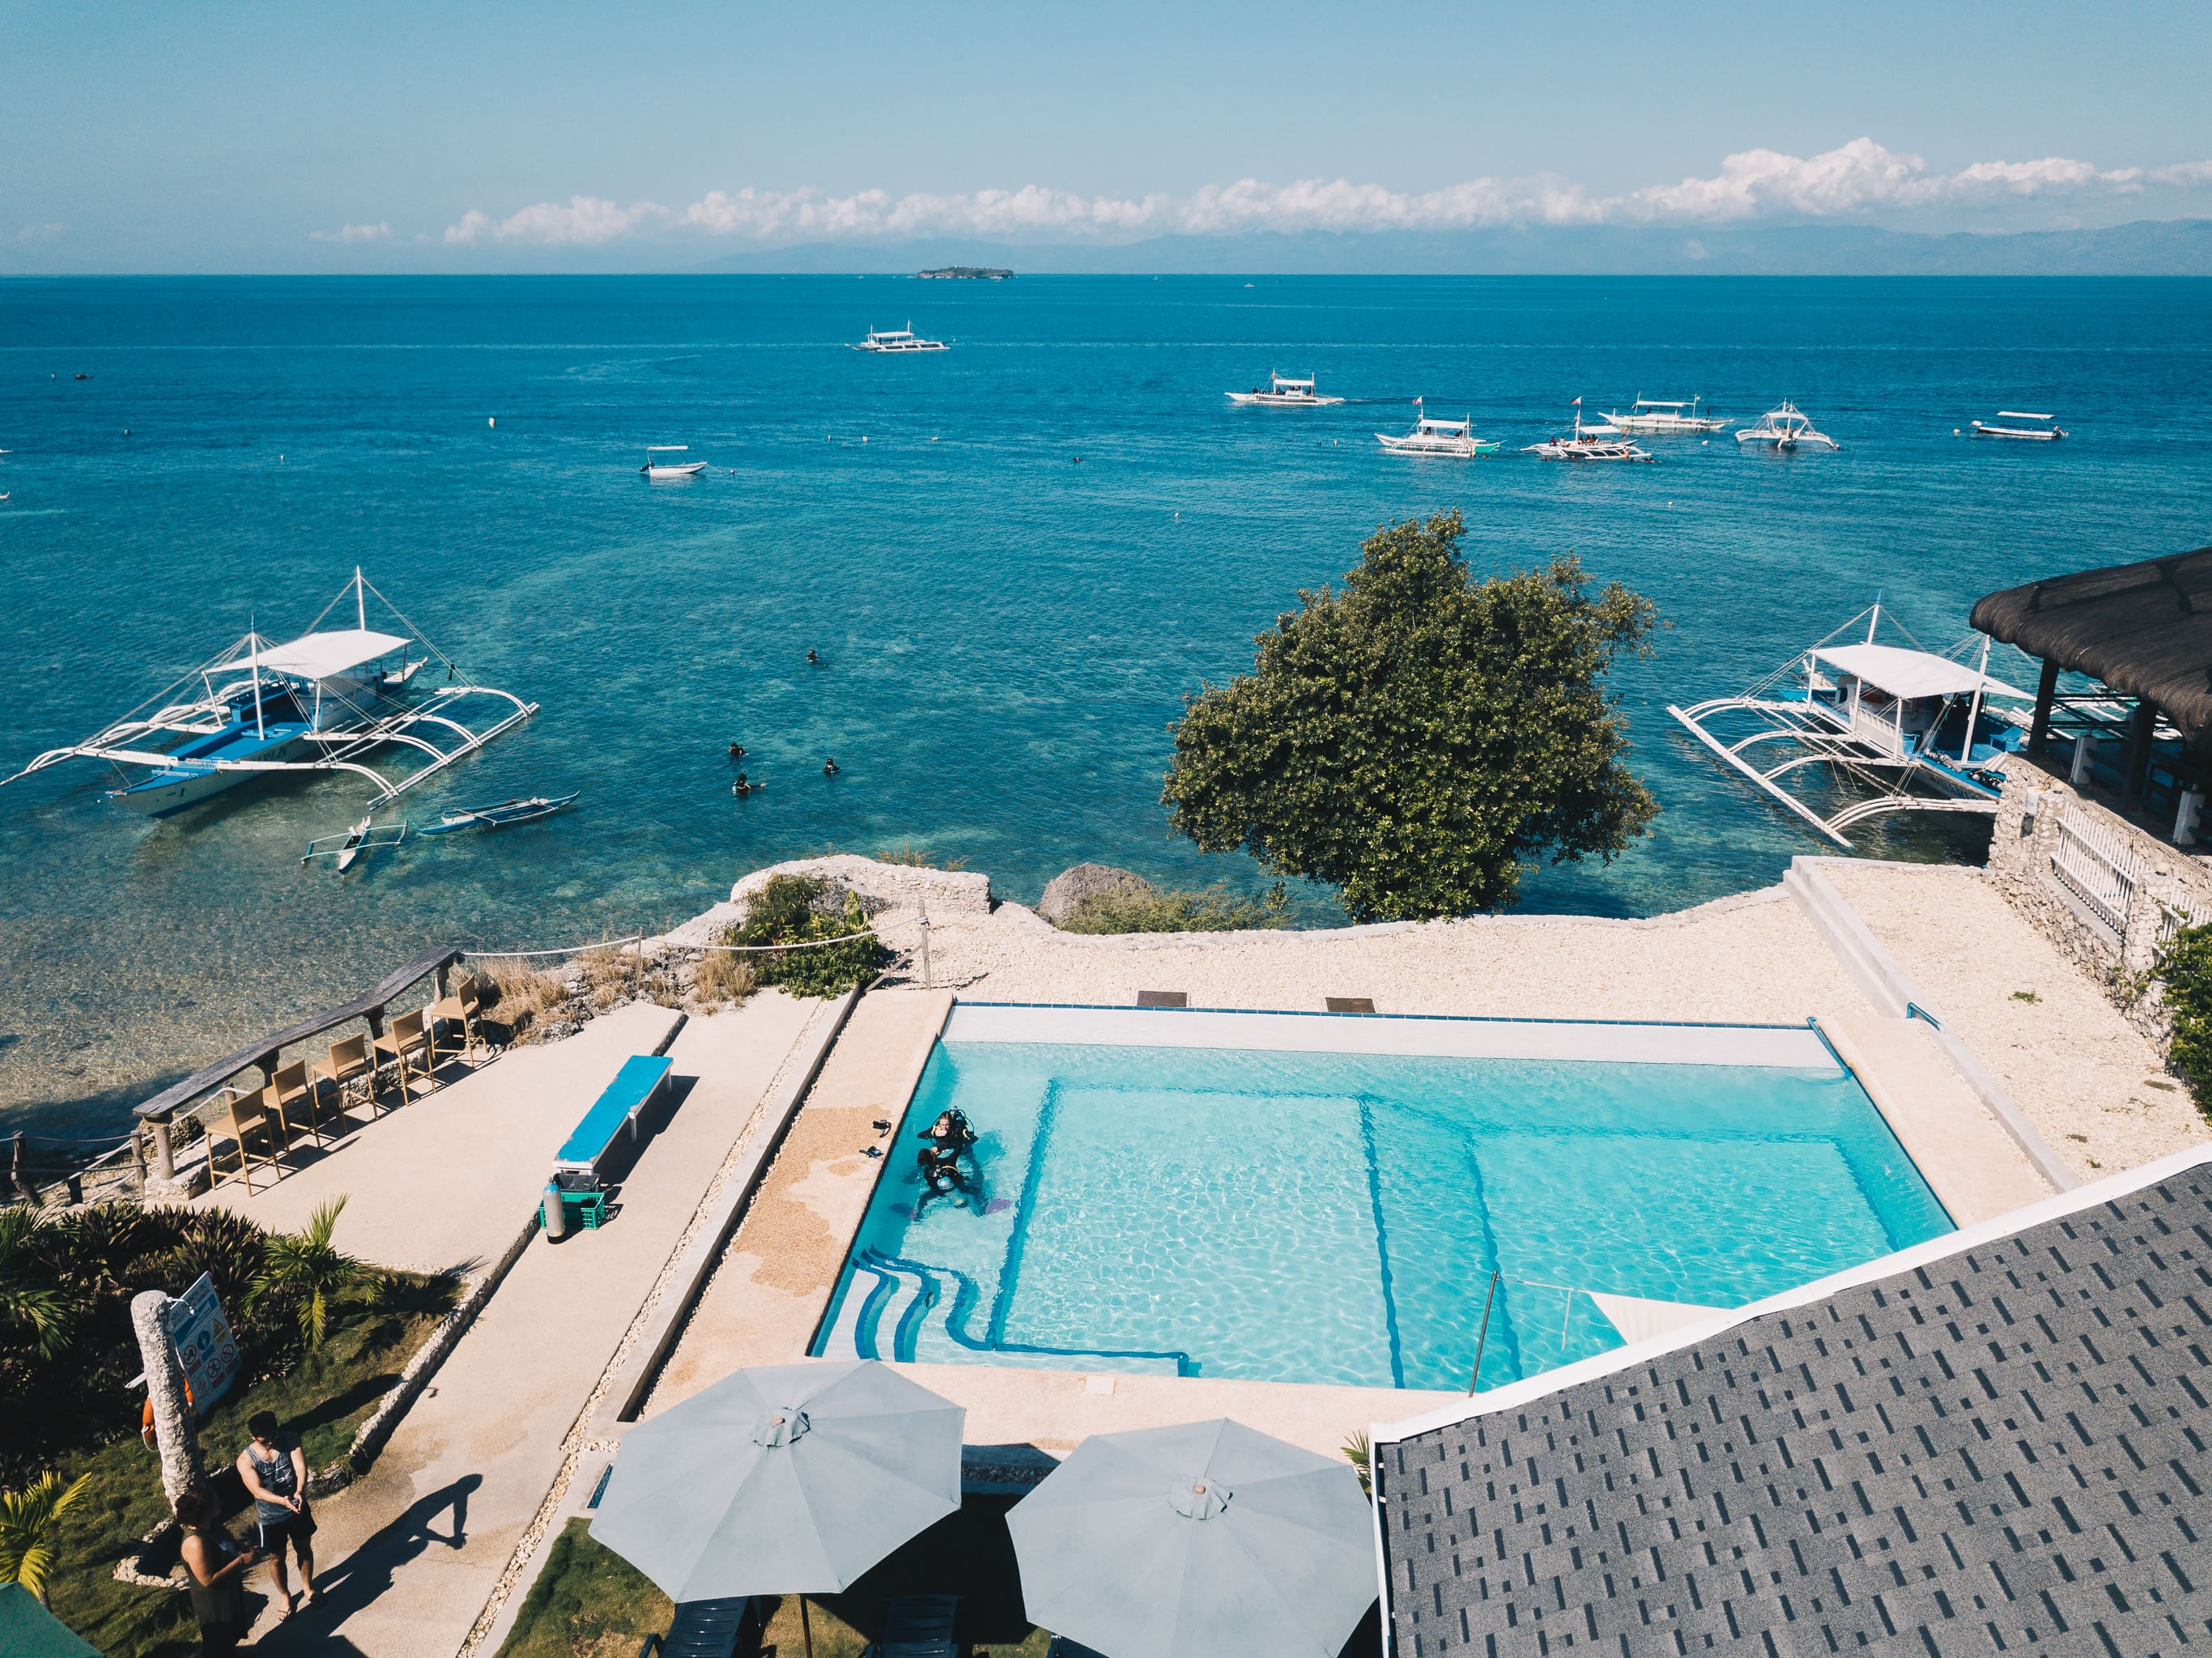 Pool of Seaview Dive Resort with an overlooking view of the ocean